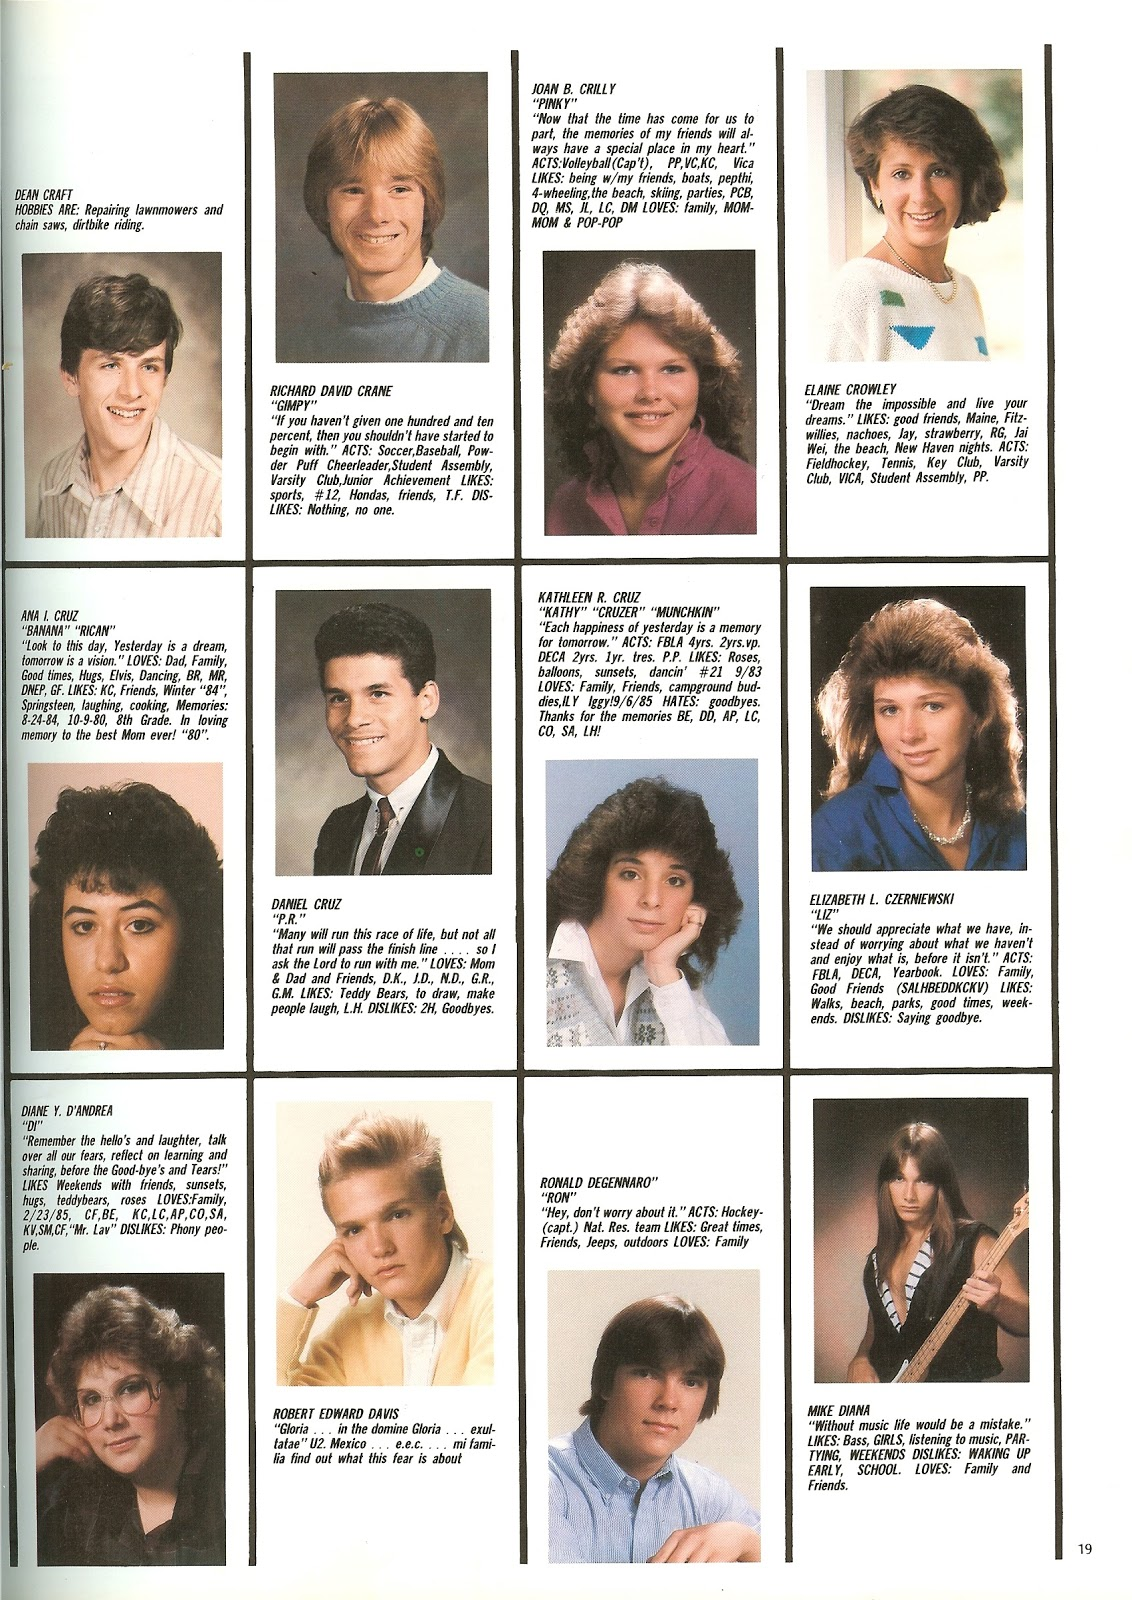 How to get yearbook pictures Dallas: TV stars including Patrick Duffy and Charlene Tilton reunite